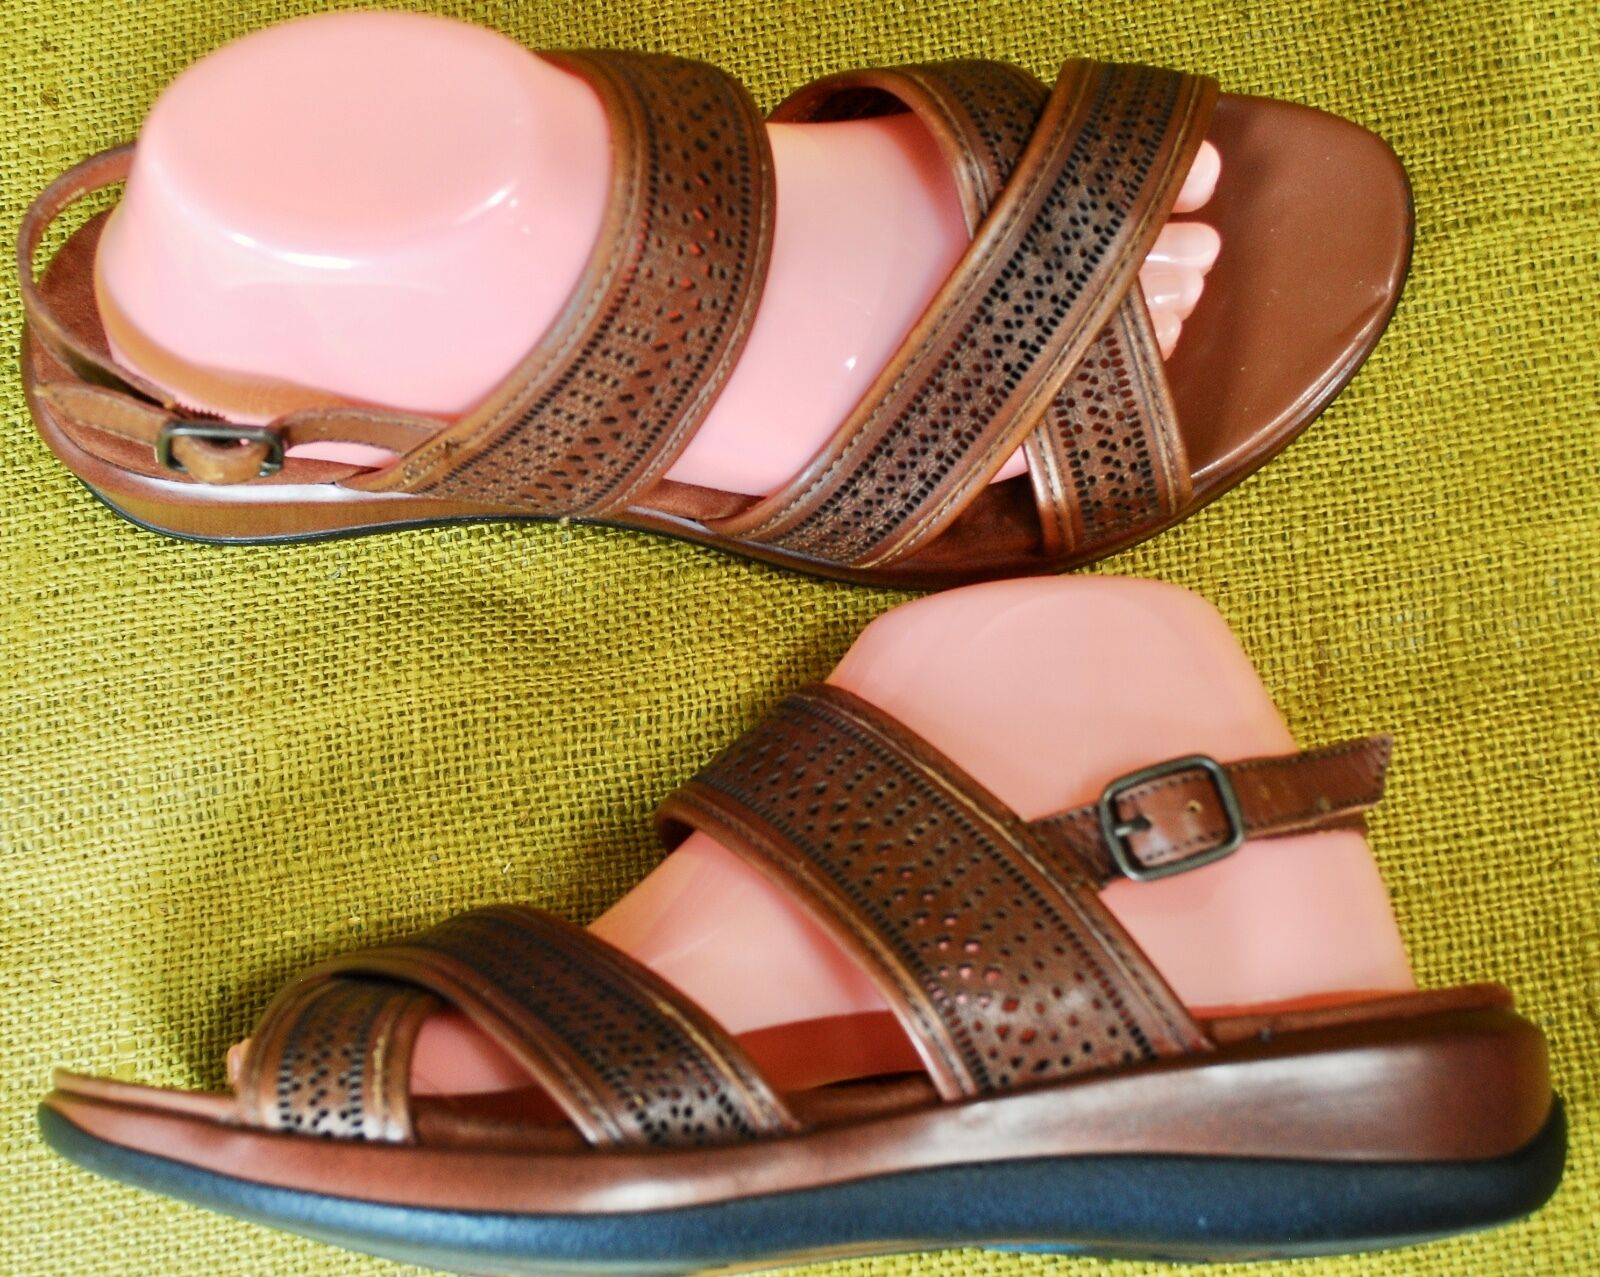 SOFT WALK SHOES TRIBES SANDALS Womens 11 Brown Leather Cross Strap Flat Casual